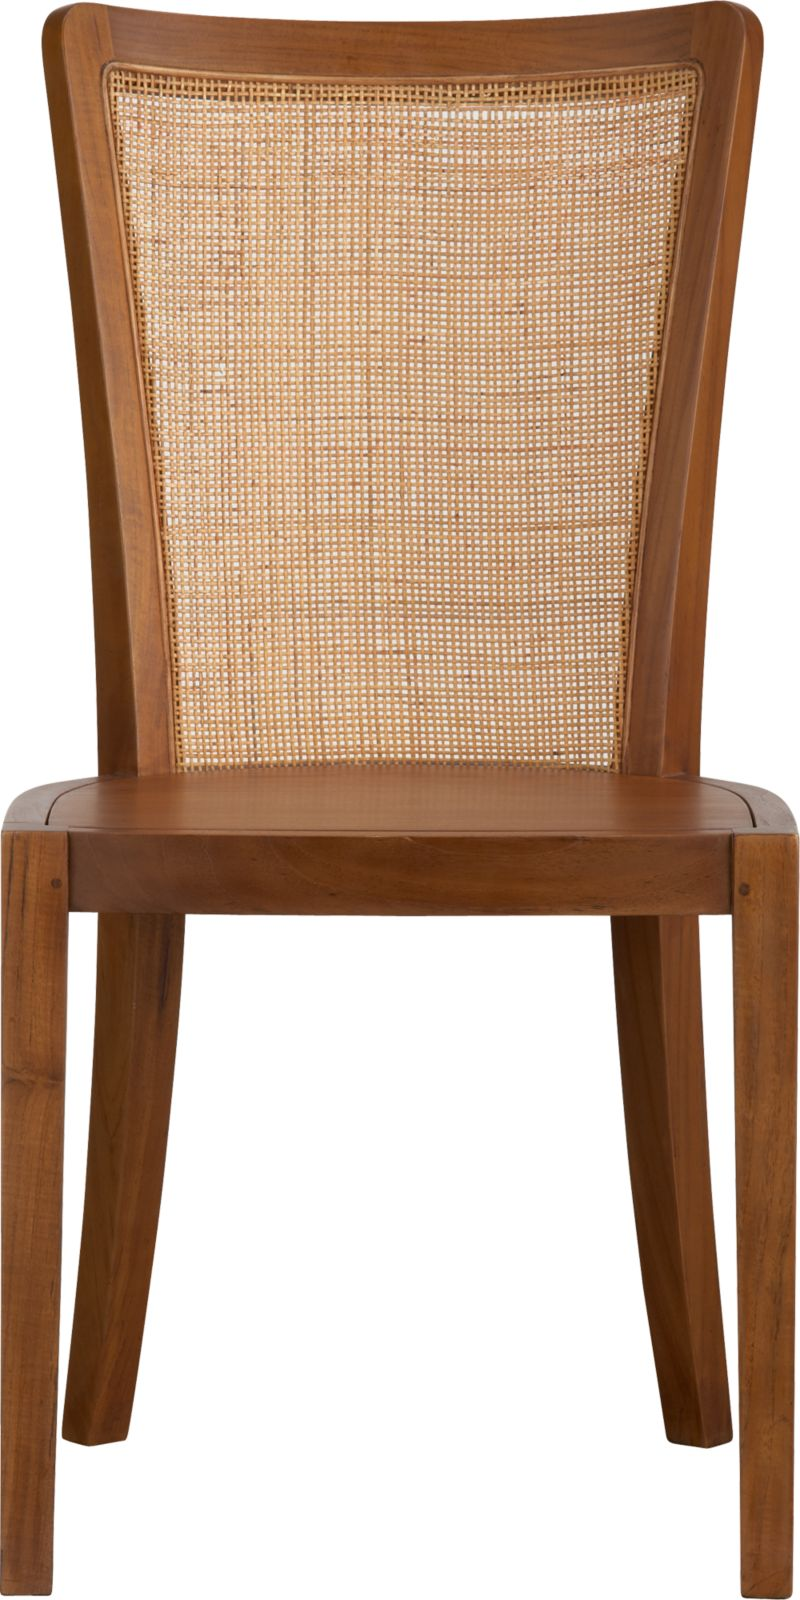 The graceful simplicity of Danish modern returns in the classic teak that became synonymous with its beauty. Fluid and rhythmic, spare and elegant, fine craftsmanship is in evidence at every turn. Sculptural tapered legs give rise to subtle curves that flow from the shapely seat to gently arced back with natural rattan weave. Crafted in engineered laminated teak and teak veneers, the warm glow of the wood is enhanced by a smooth satin lacquer that showcases natural variations in the knotty grain and tone.<br /><br /><NEWTAG/><ul><li>Engineered lamimated teak</li><li>Natural woven rattan back</li><li>Finished with durable polyurethane lacquer</li><li>Naturally occurring texture, knots, seasonal splitting and checking are inherent to wood species</li><li>Made in Indonesia</li></ul>